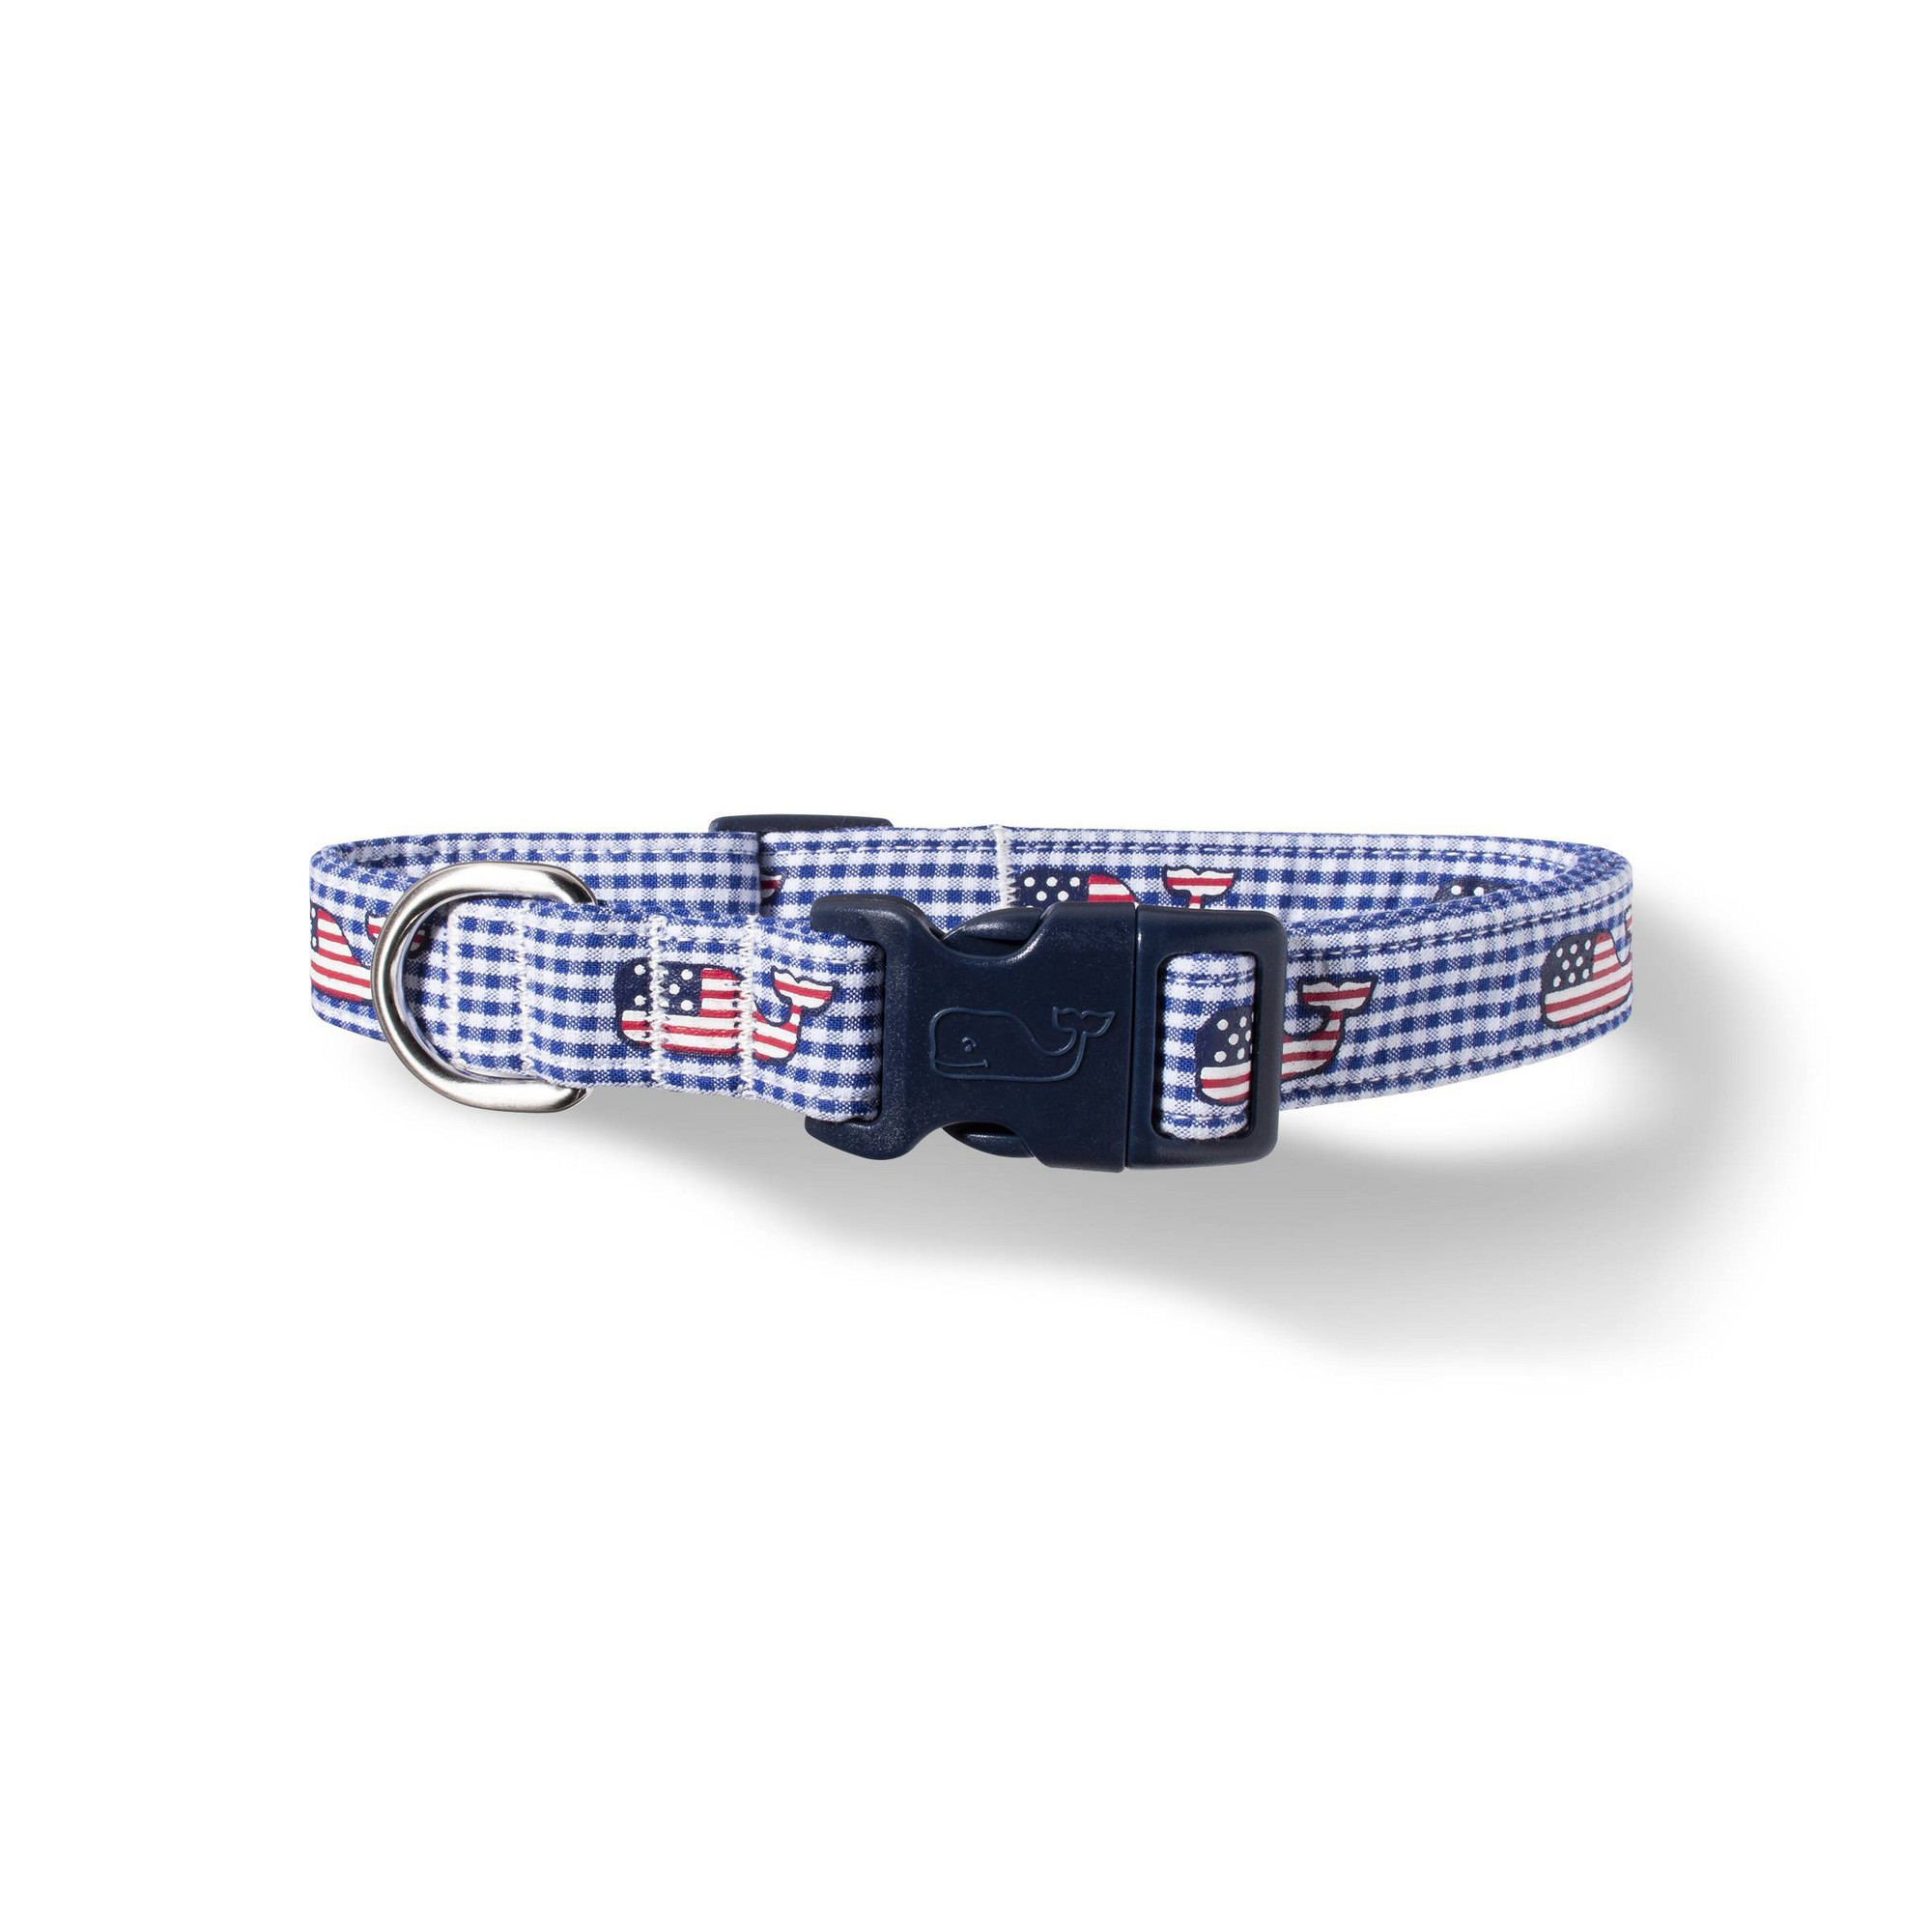 b6fdc8a91012 Flag Whale and Gingham Dog Collar - X Small - Navy - vineyard vines for  Target